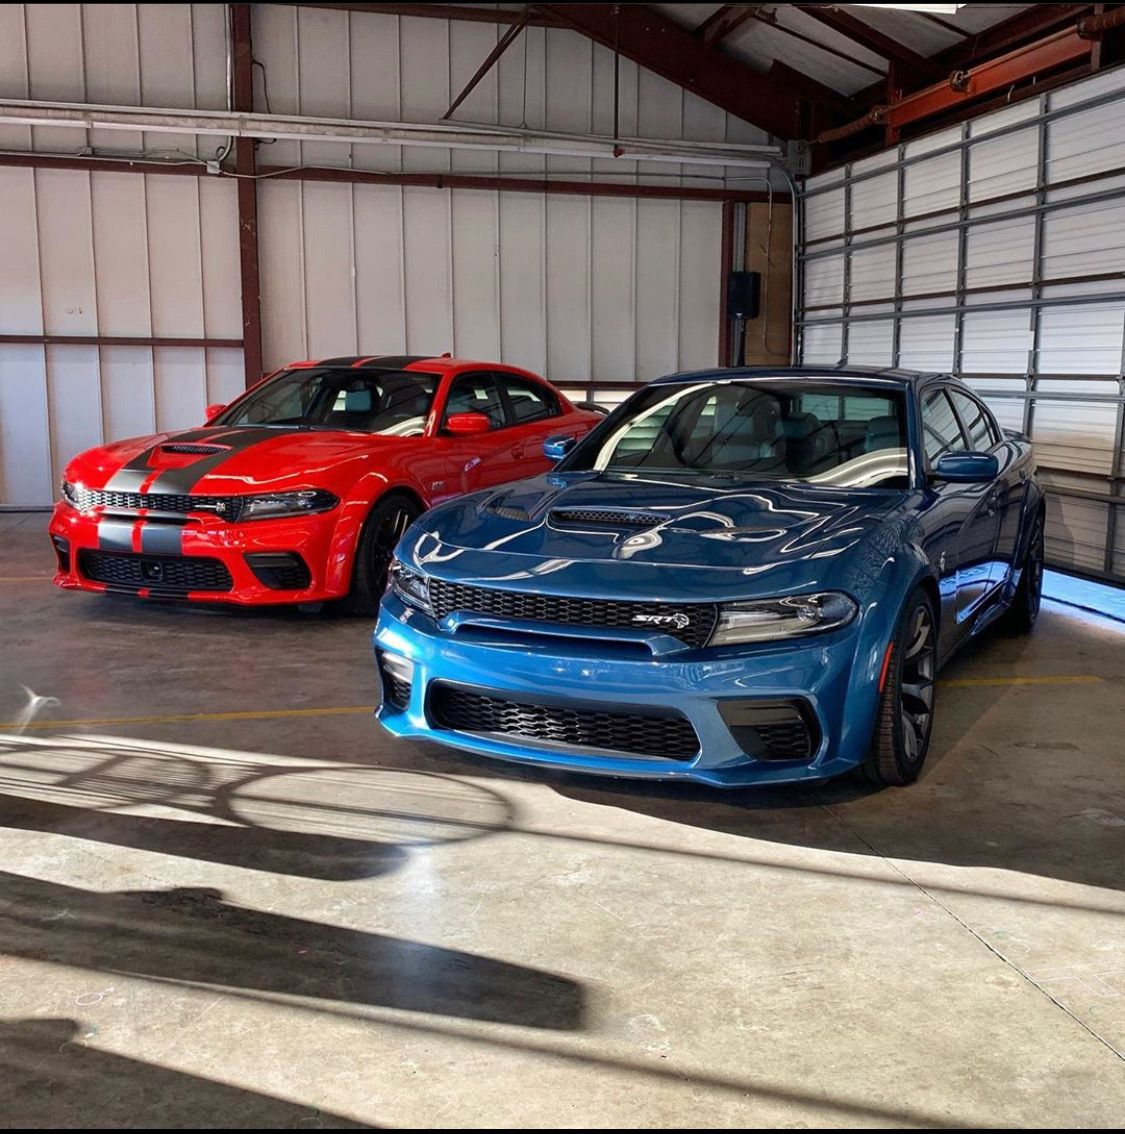 2020 Widebody Dodge Charger Hellcat Dodge Charger Hellcat Dodge Charger Dodge Charger Srt